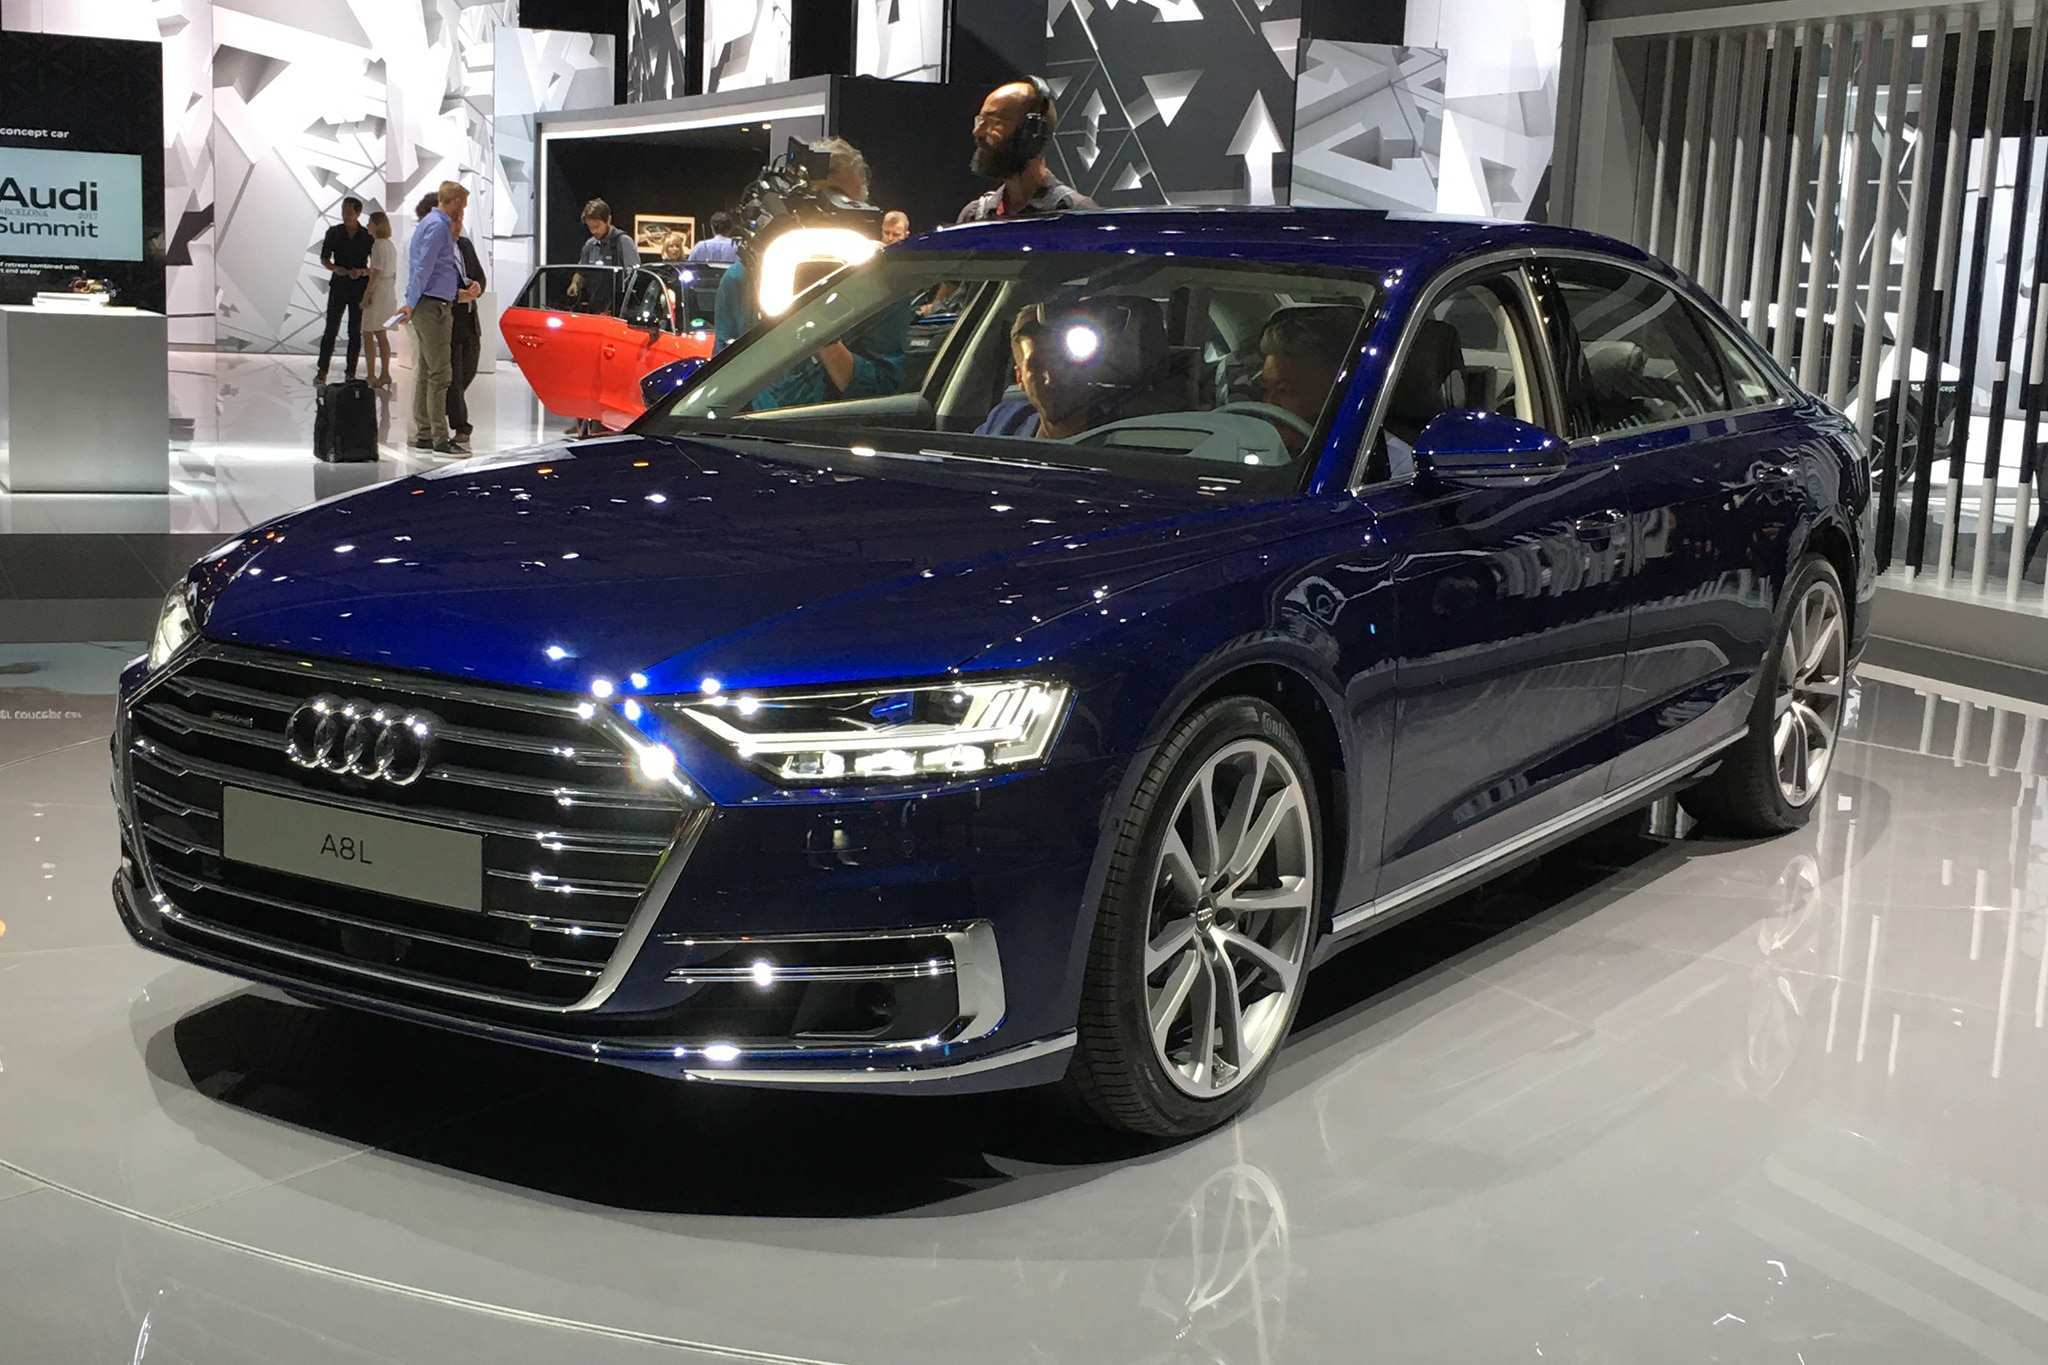 55 Concept of Audi A8 2019 Wallpaper for Audi A8 2019